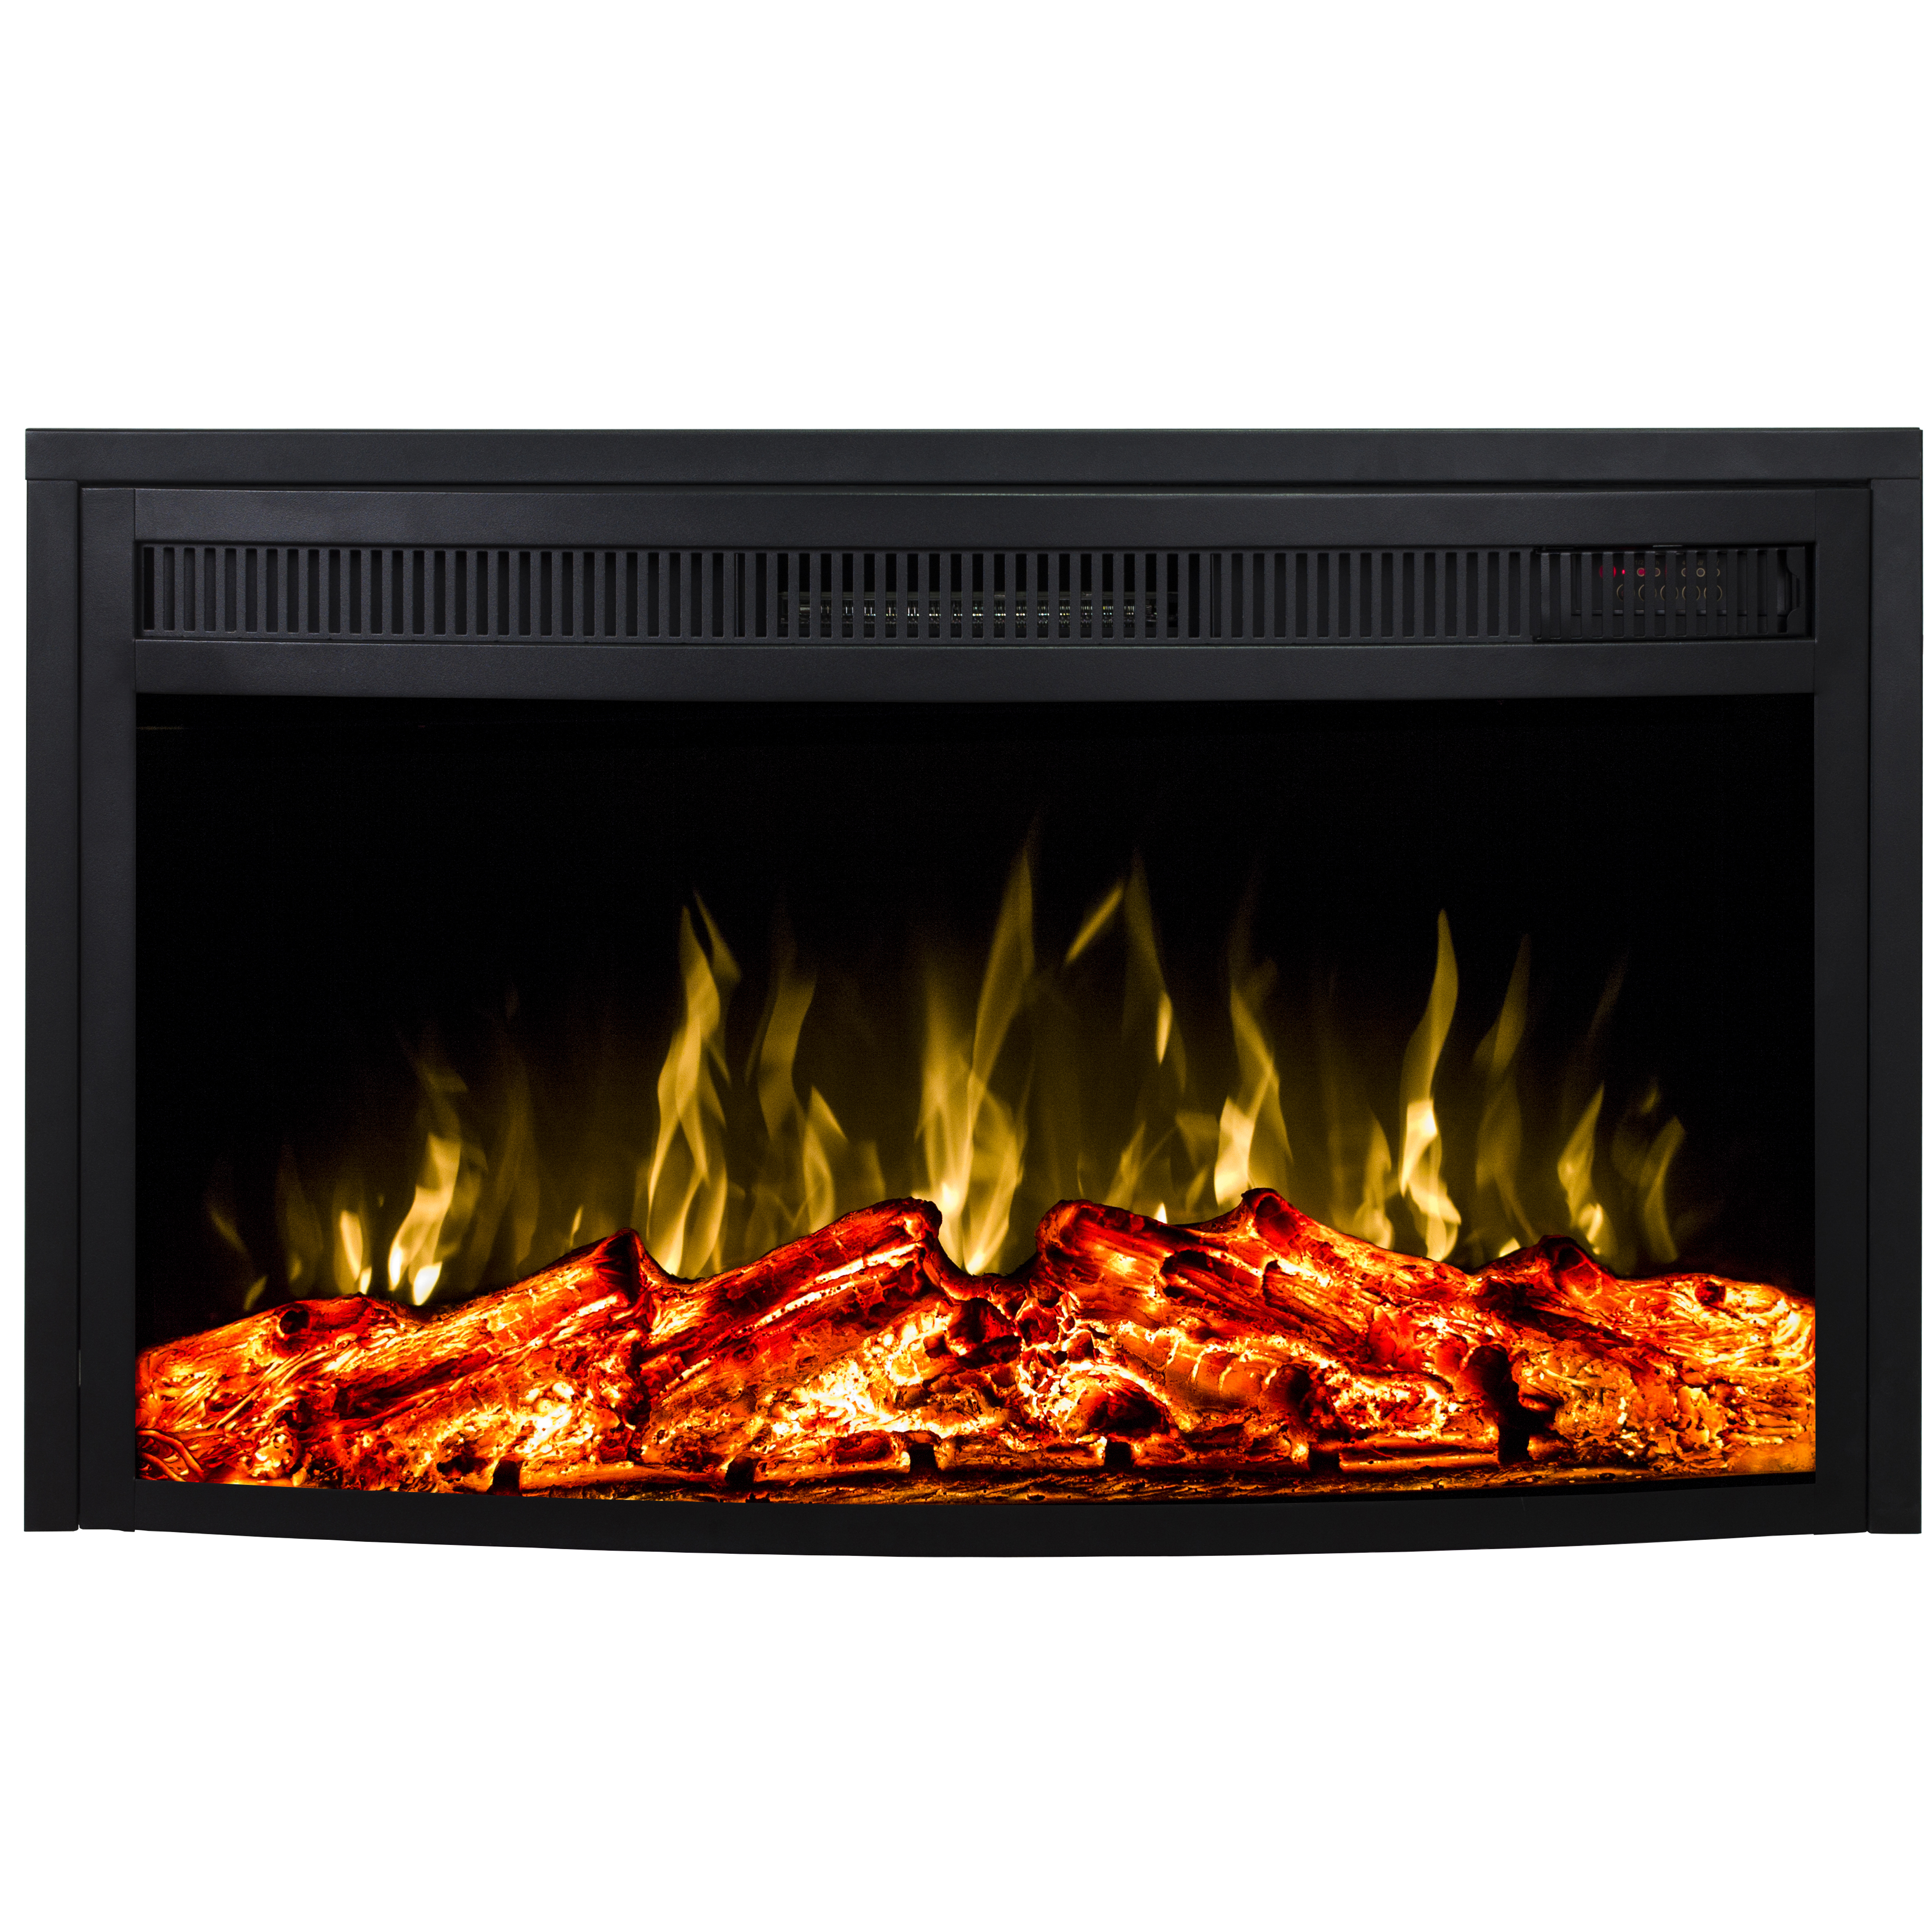 fireplaces ventless and heat save gas inserts fireplace increase products stylish cmyk money natural